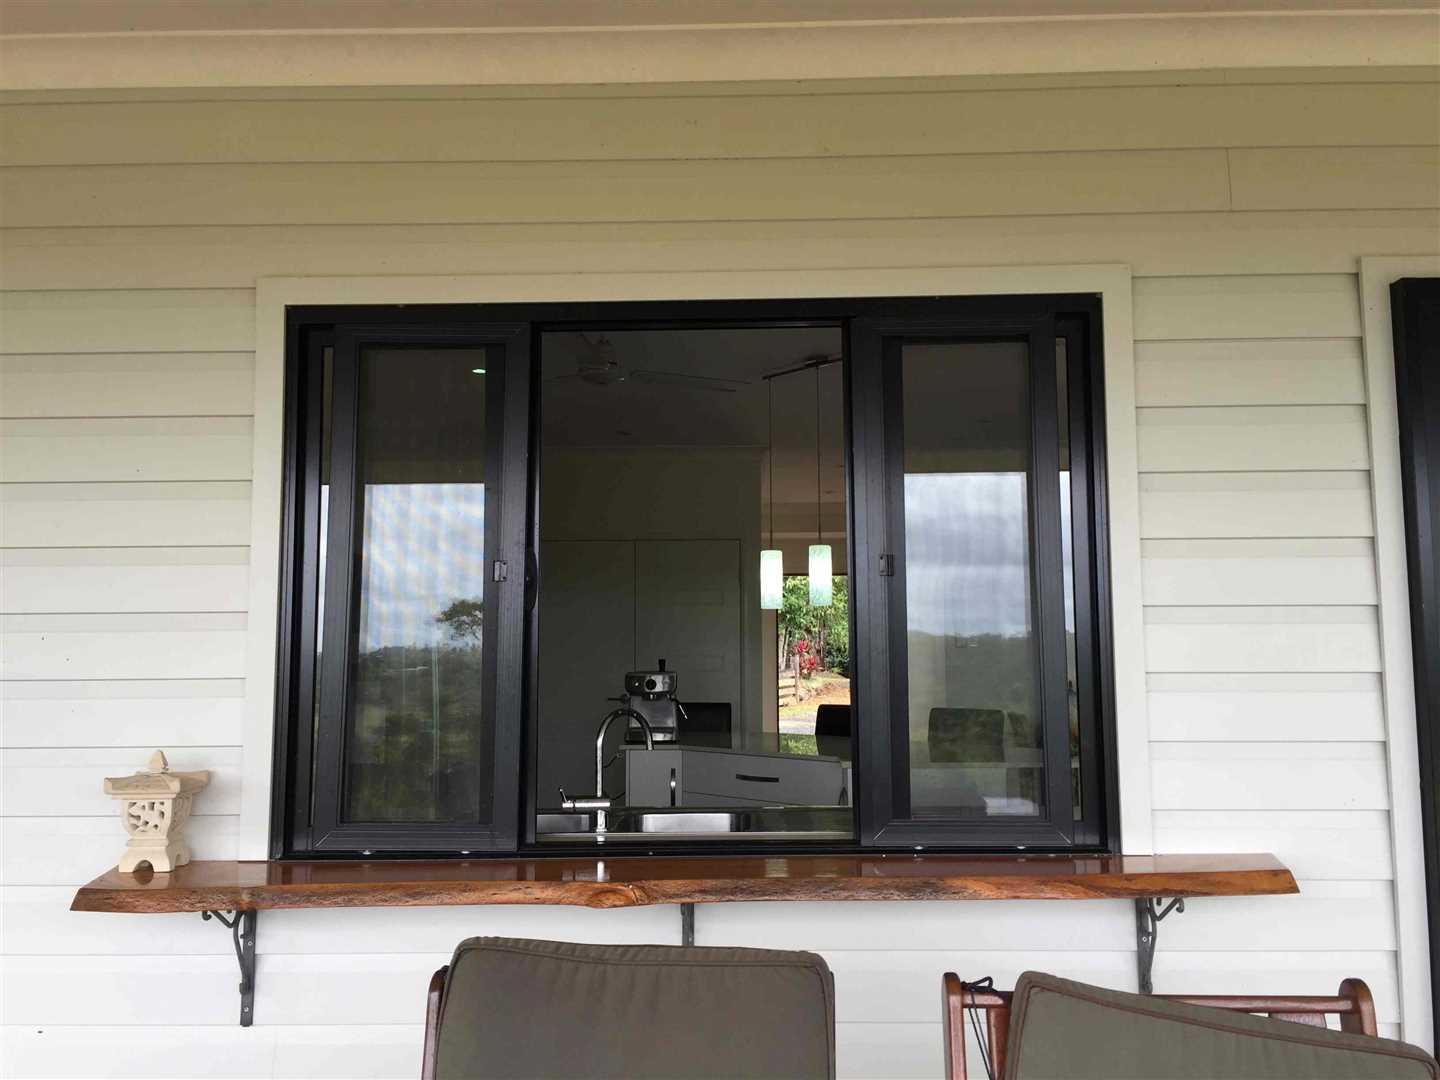 View from the home verandah showing the servery